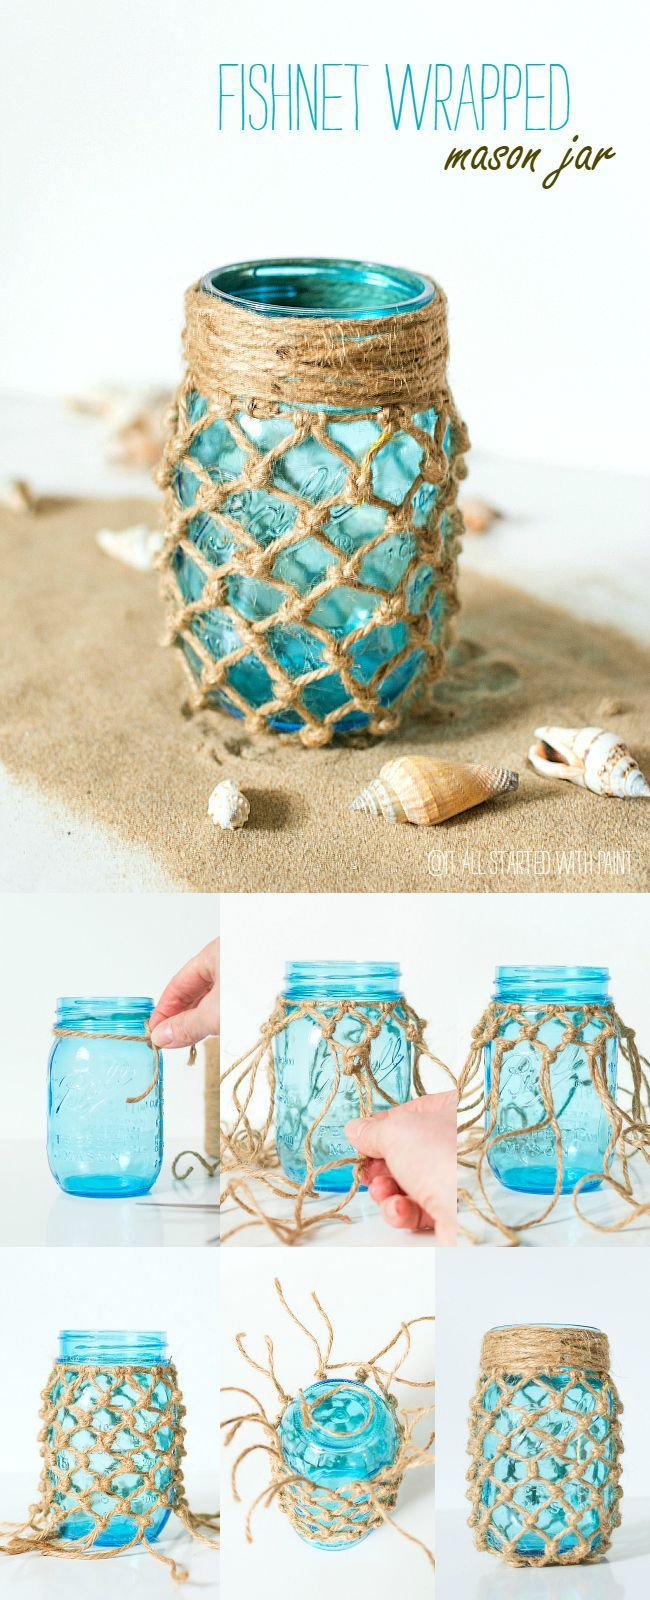 DIY fishnet wrapped mason jars for beach wedding ideas